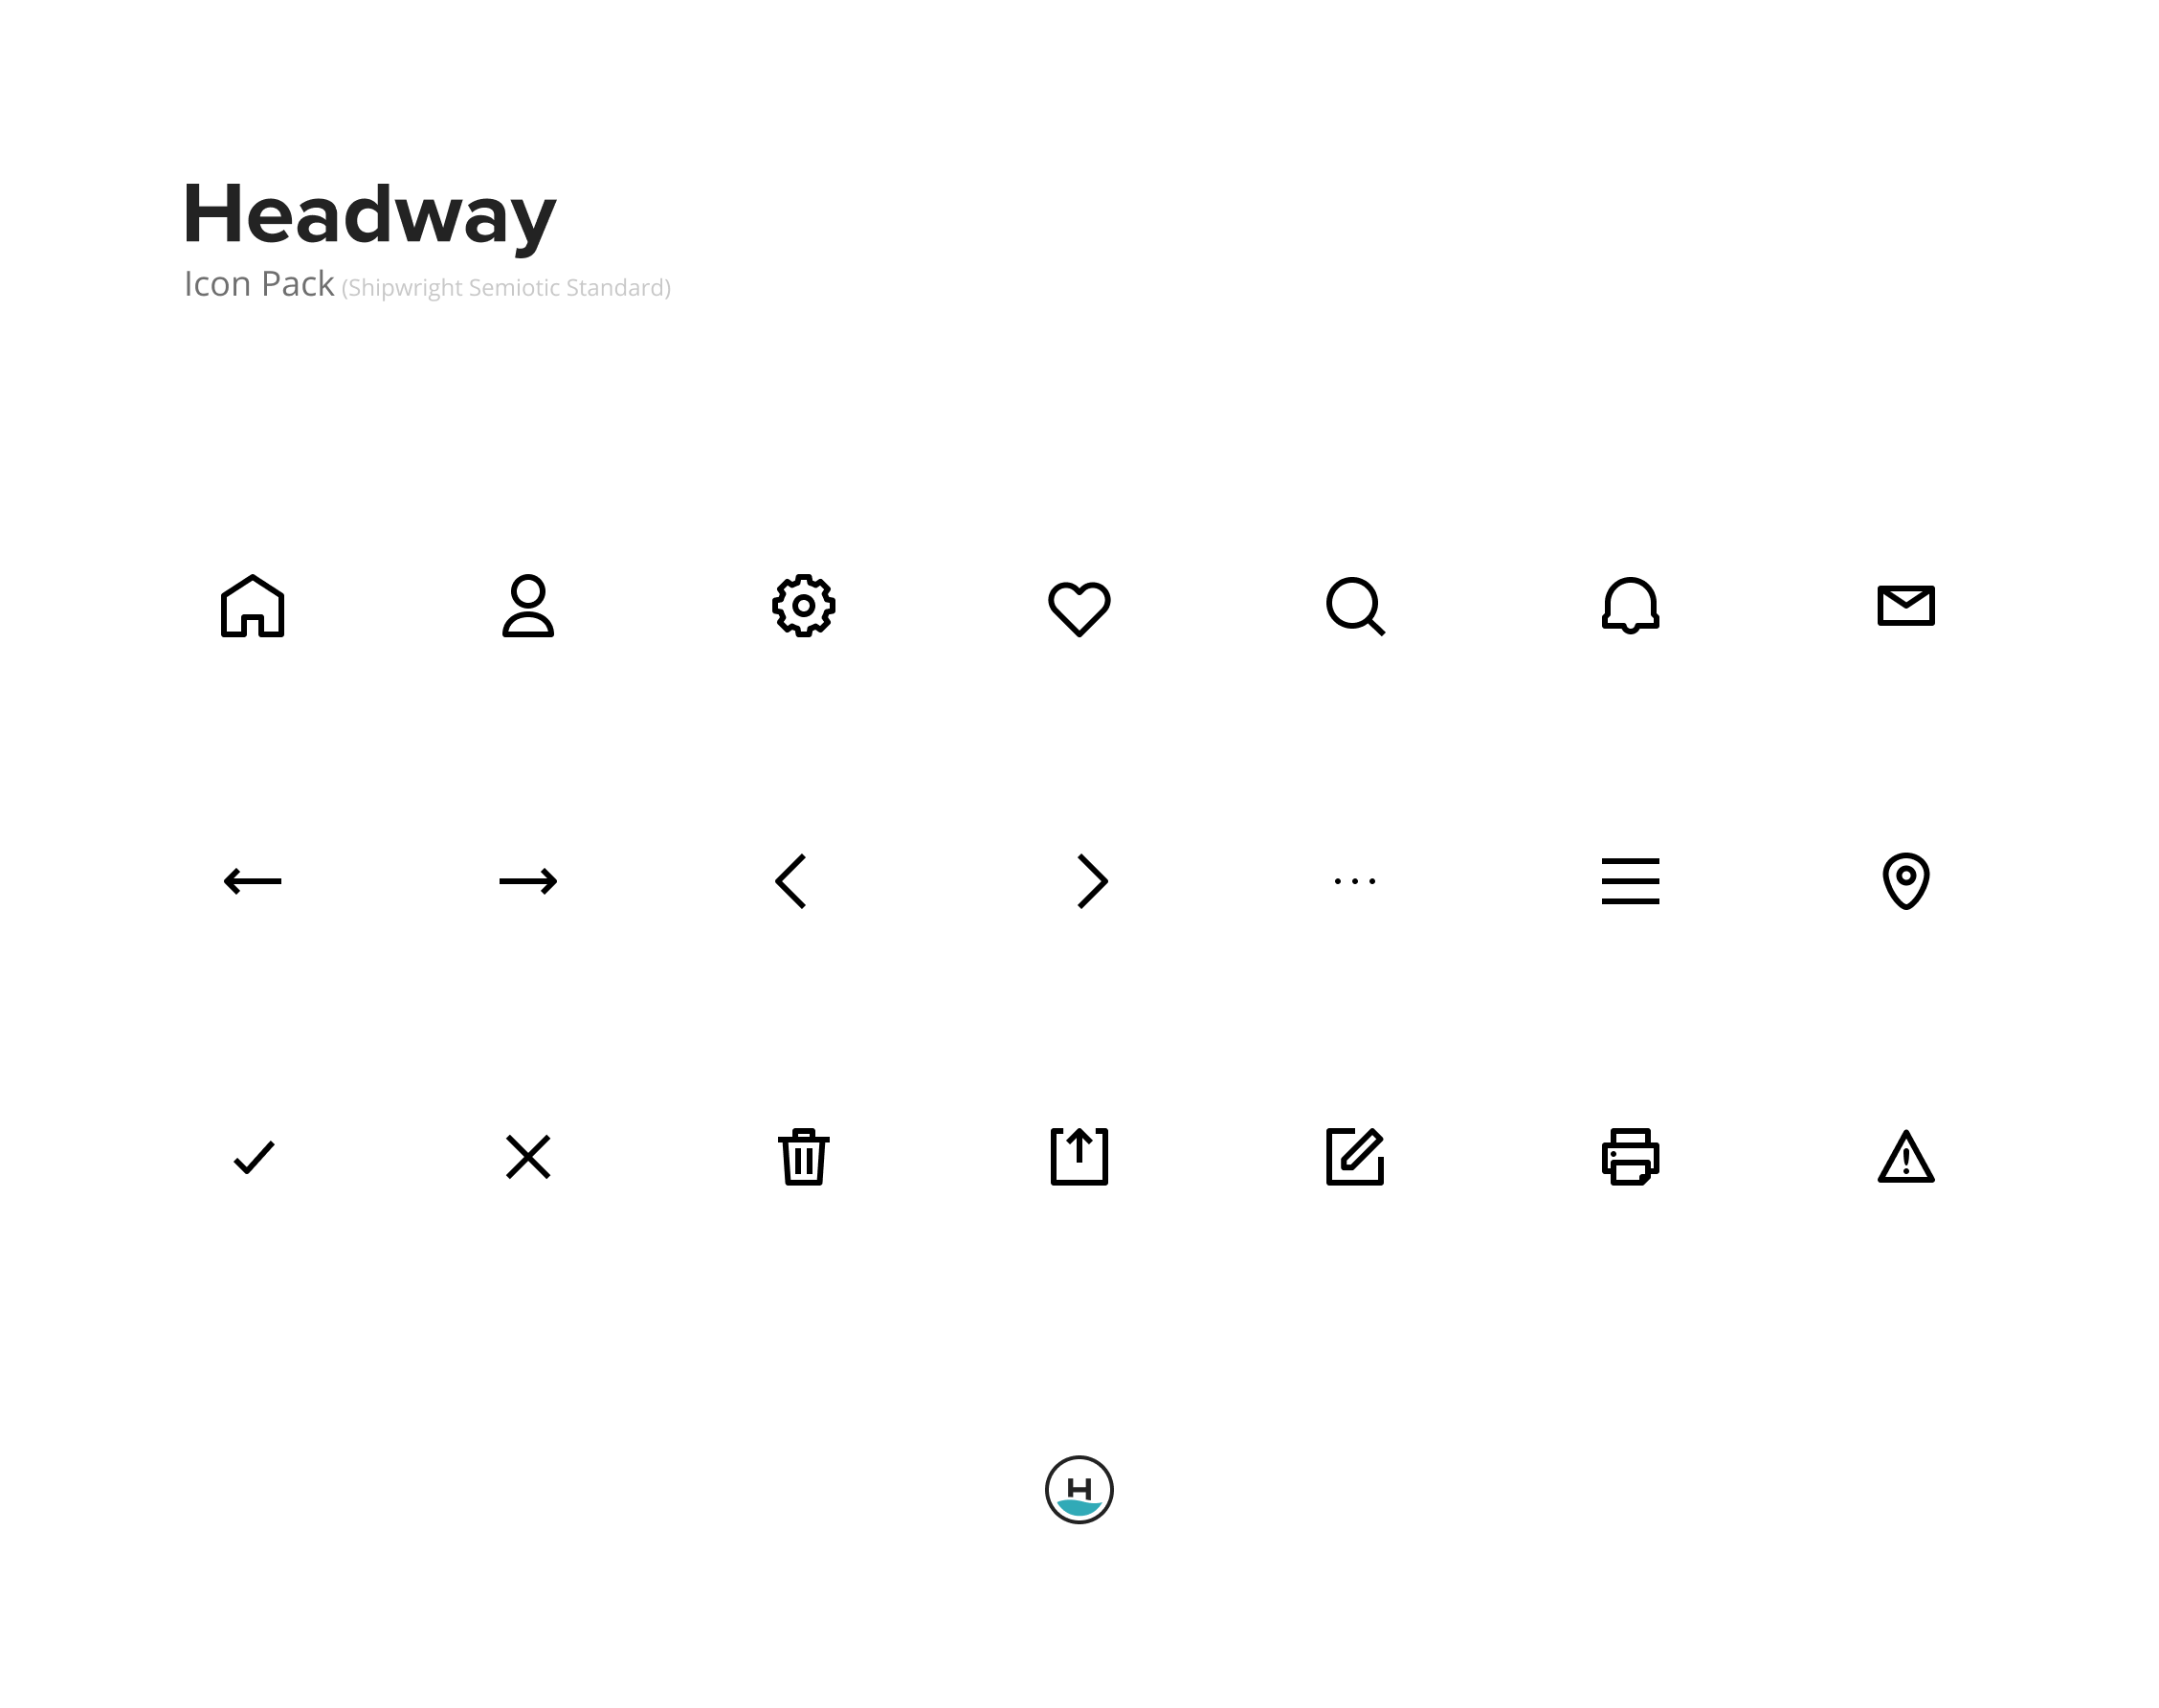 Full Headway Icon Pack